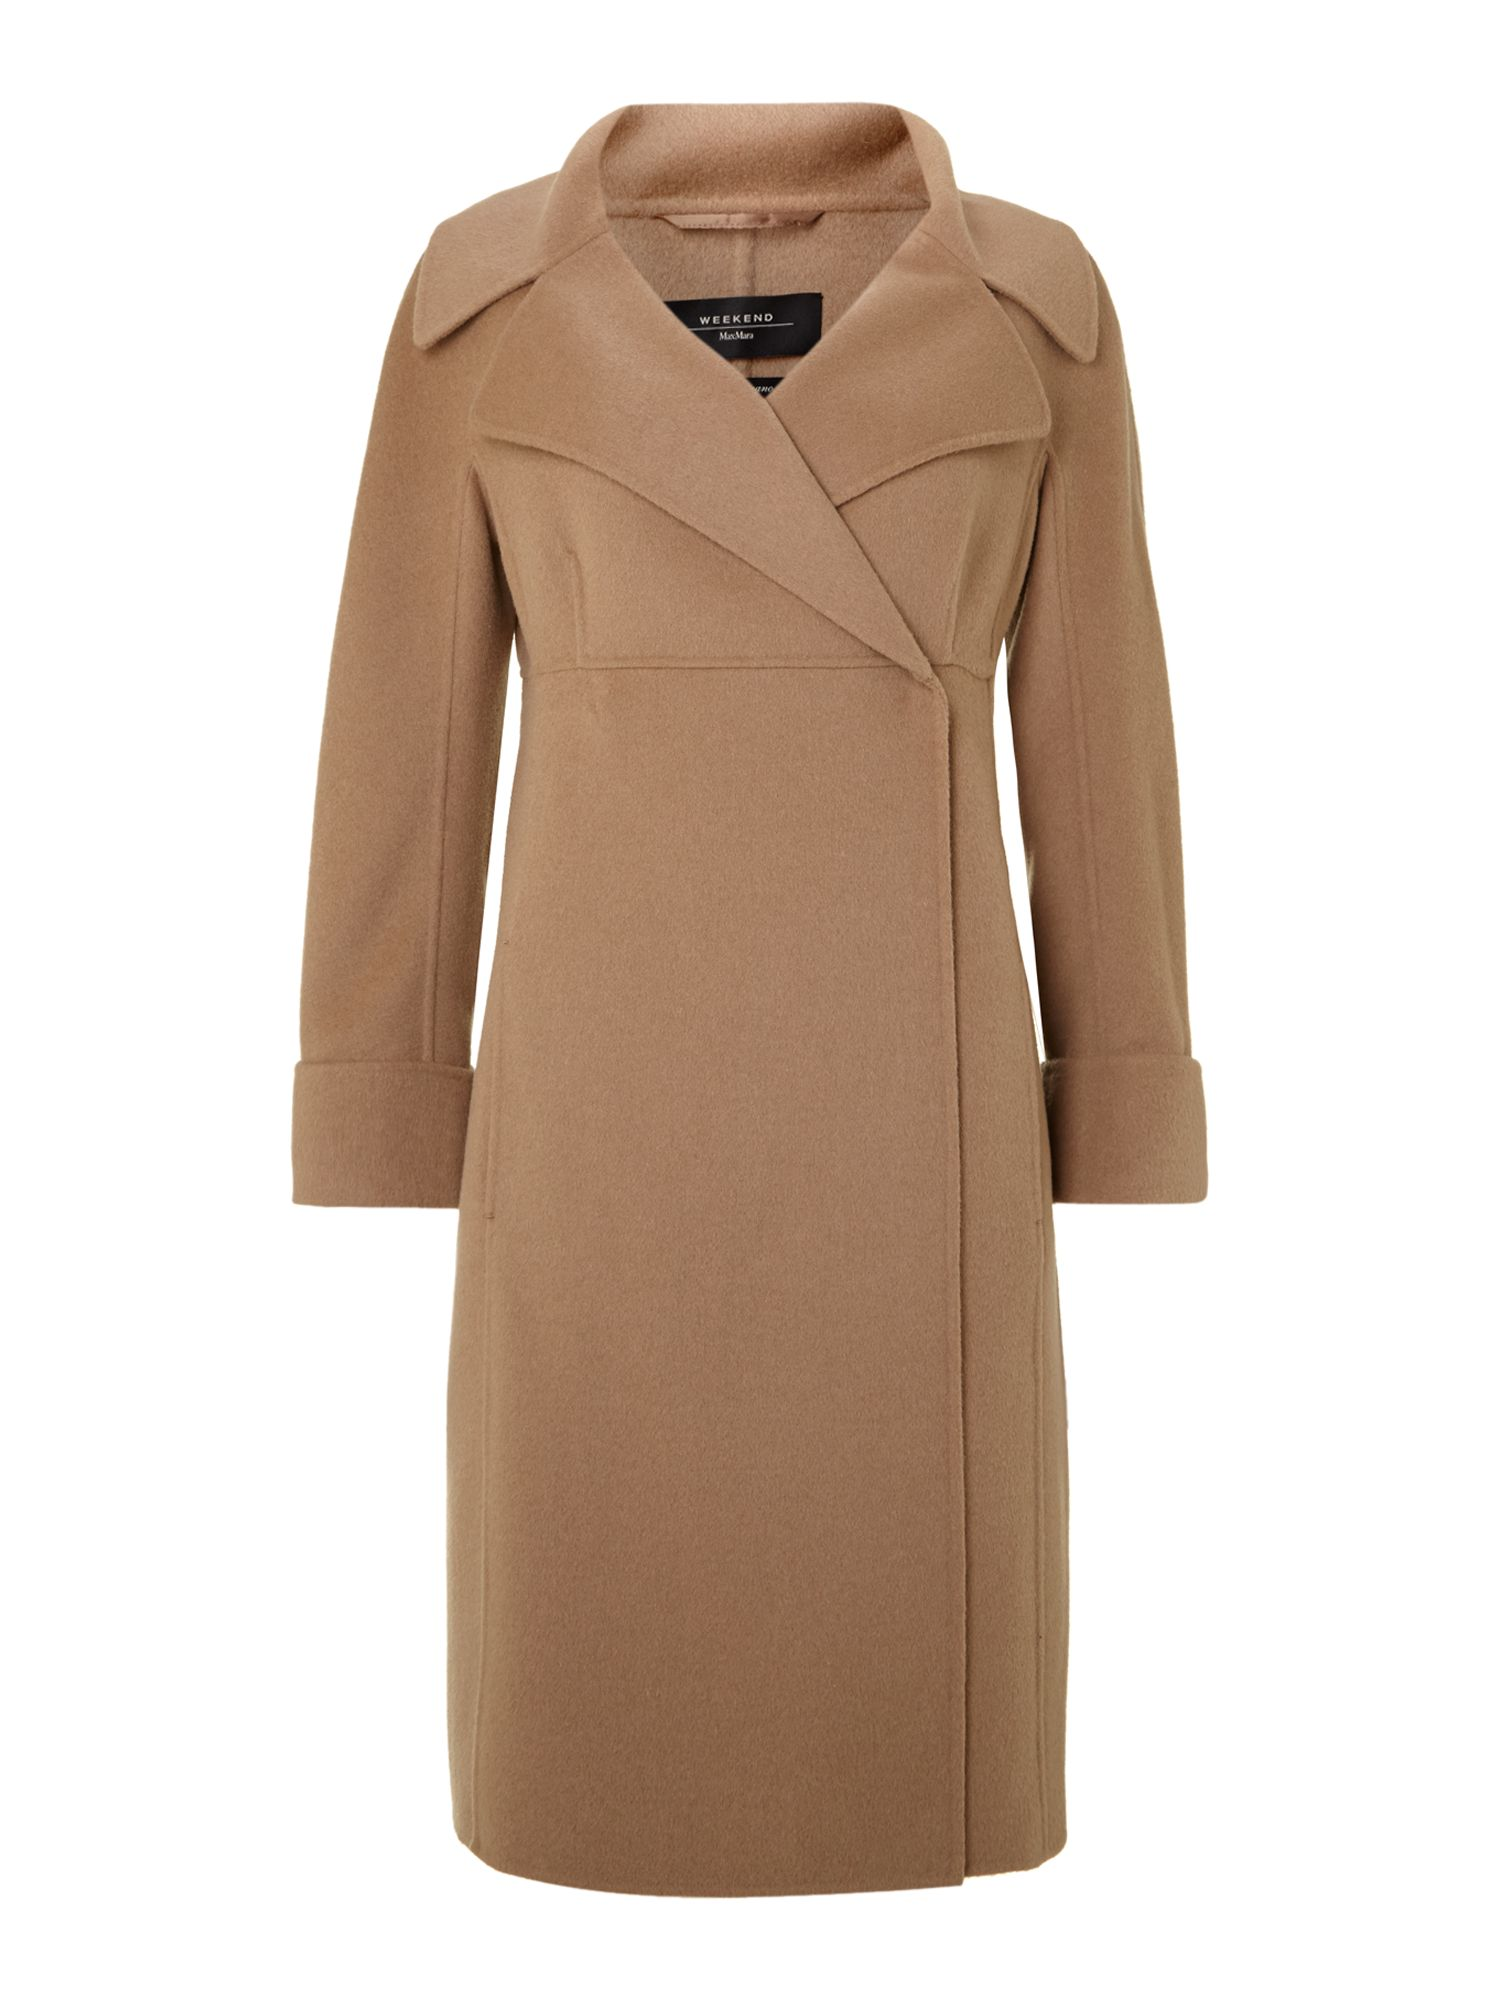 Katana double faced wool coat